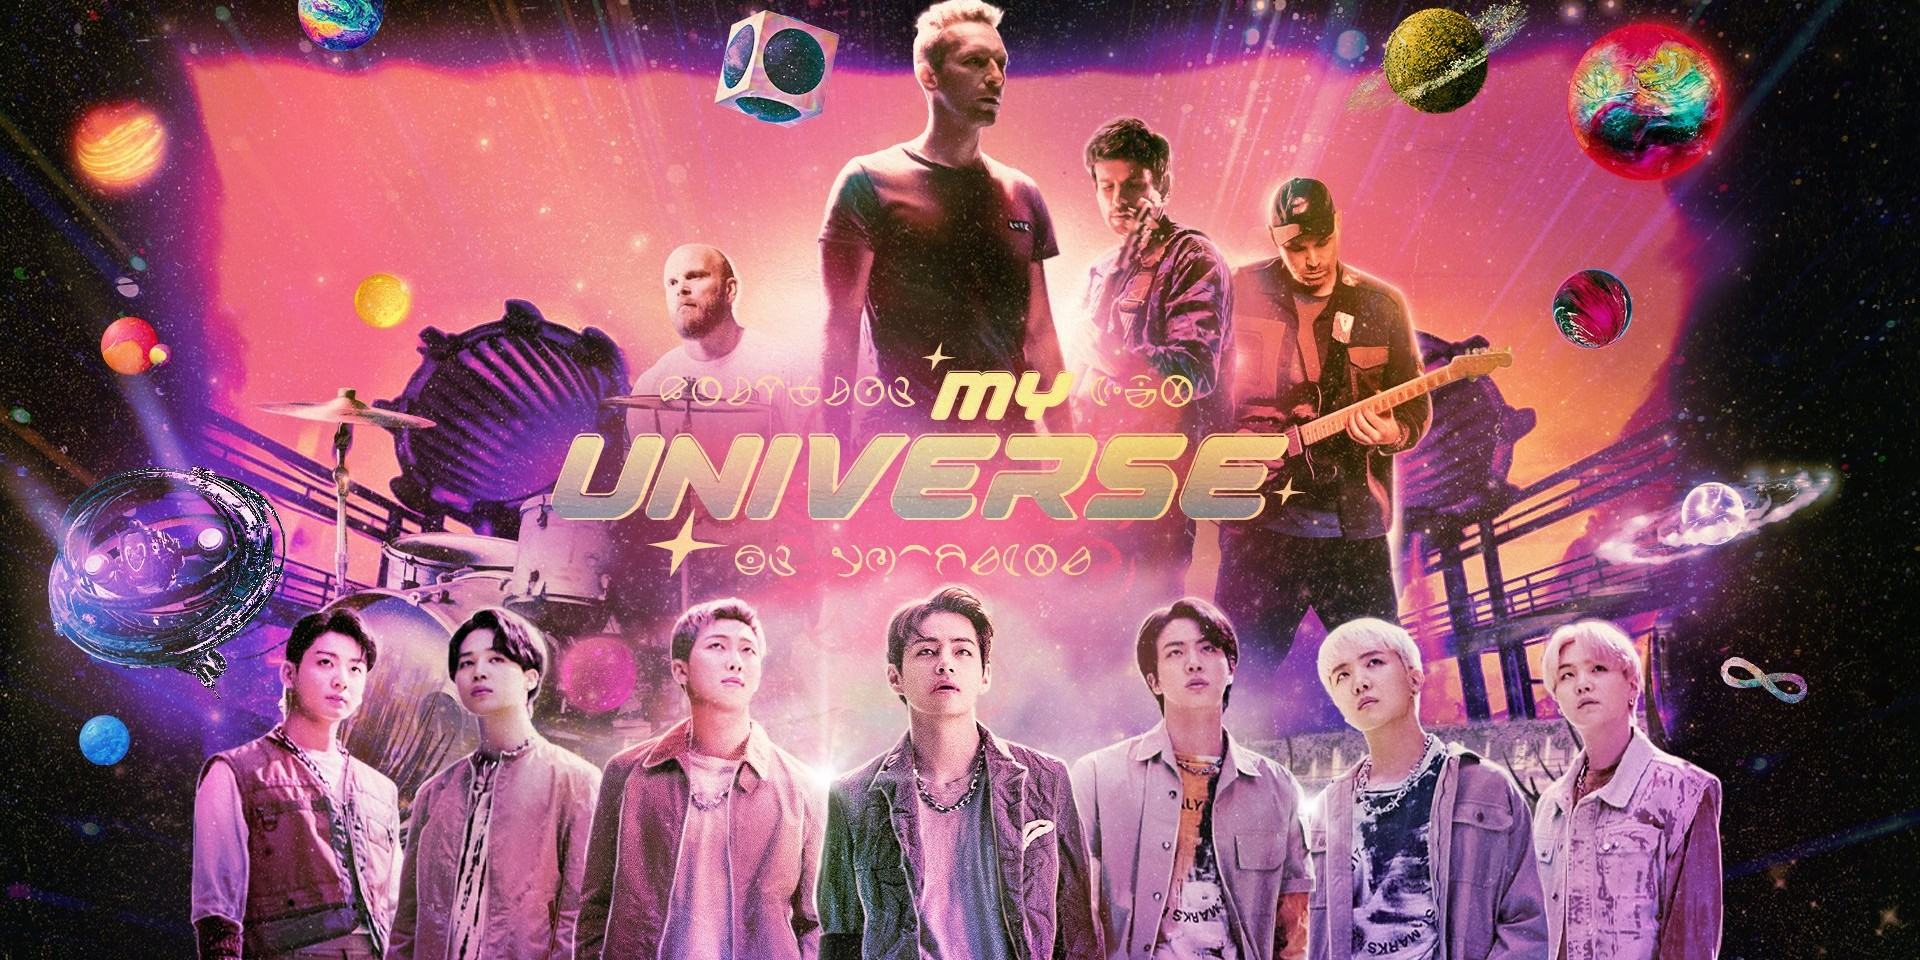 BTS and Coldplay go on an intergalactic adventure in official music video for 'My Universe' – watch